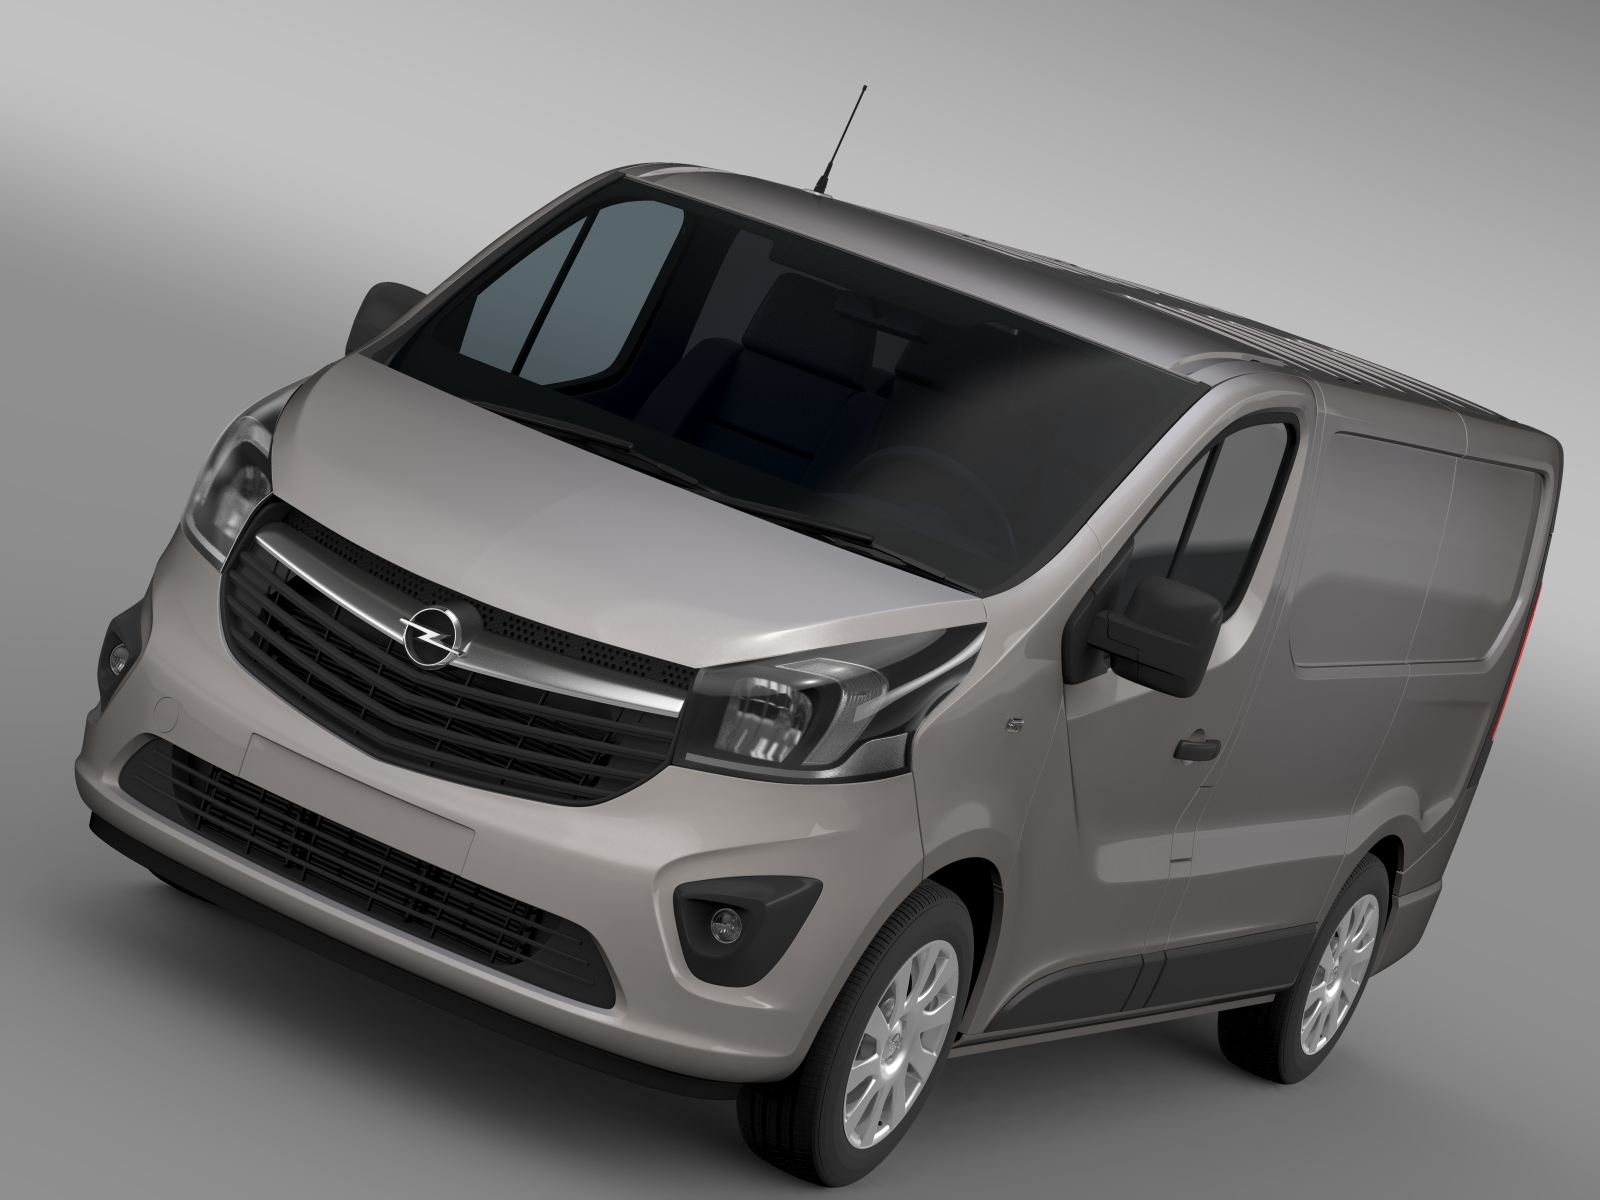 opel vivaro van 2015 3d model buy opel vivaro van 2015 3d model flatpyramid. Black Bedroom Furniture Sets. Home Design Ideas